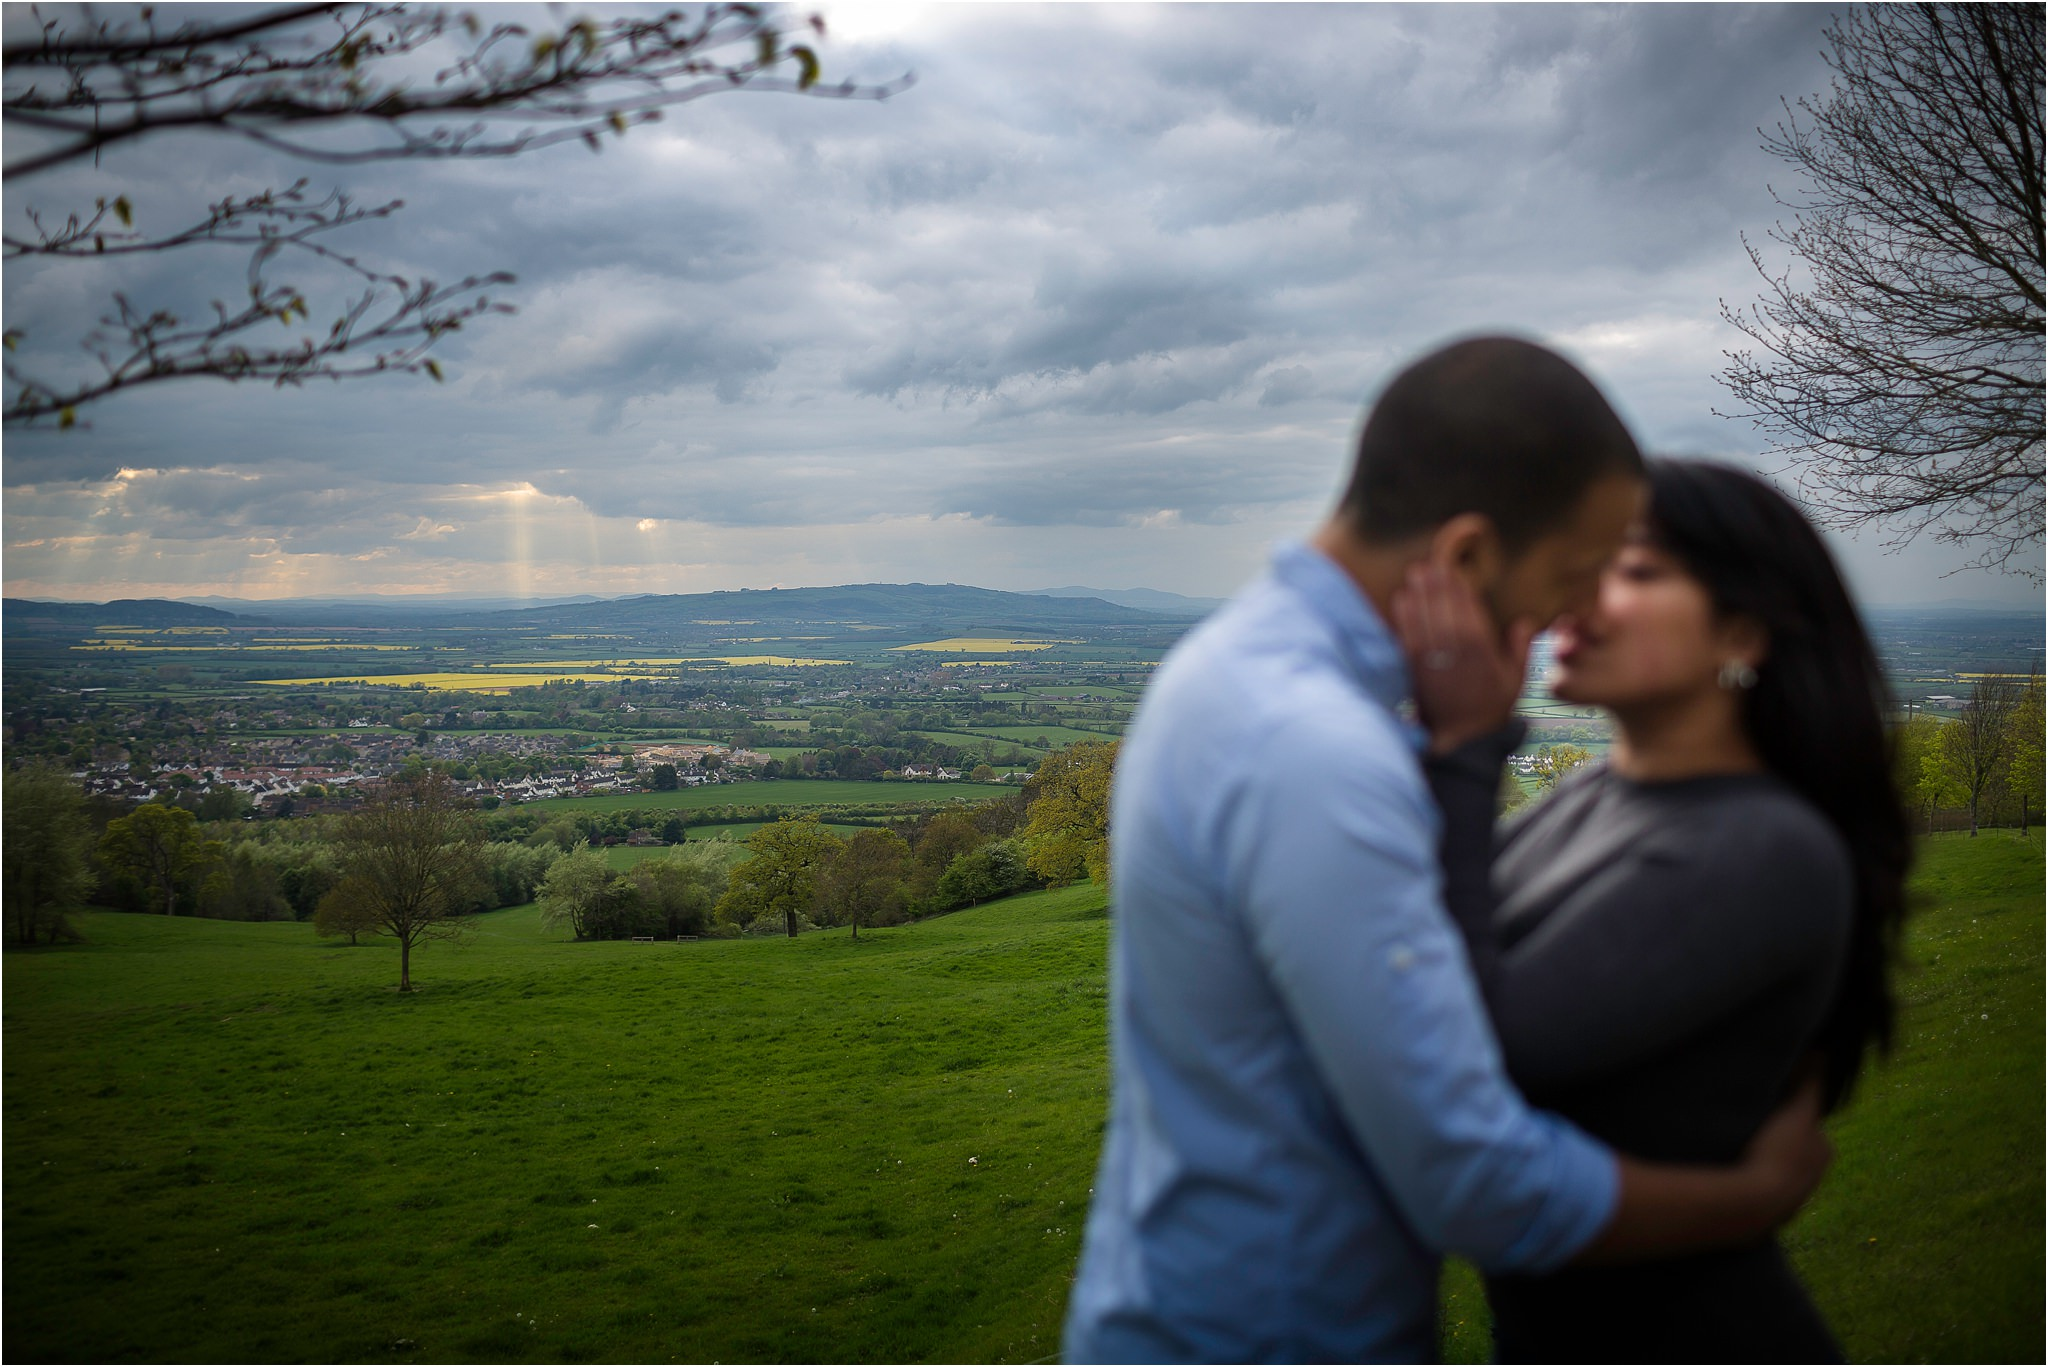 couple out of focus, kissing, with main focus being of the beautiful countryside behind them